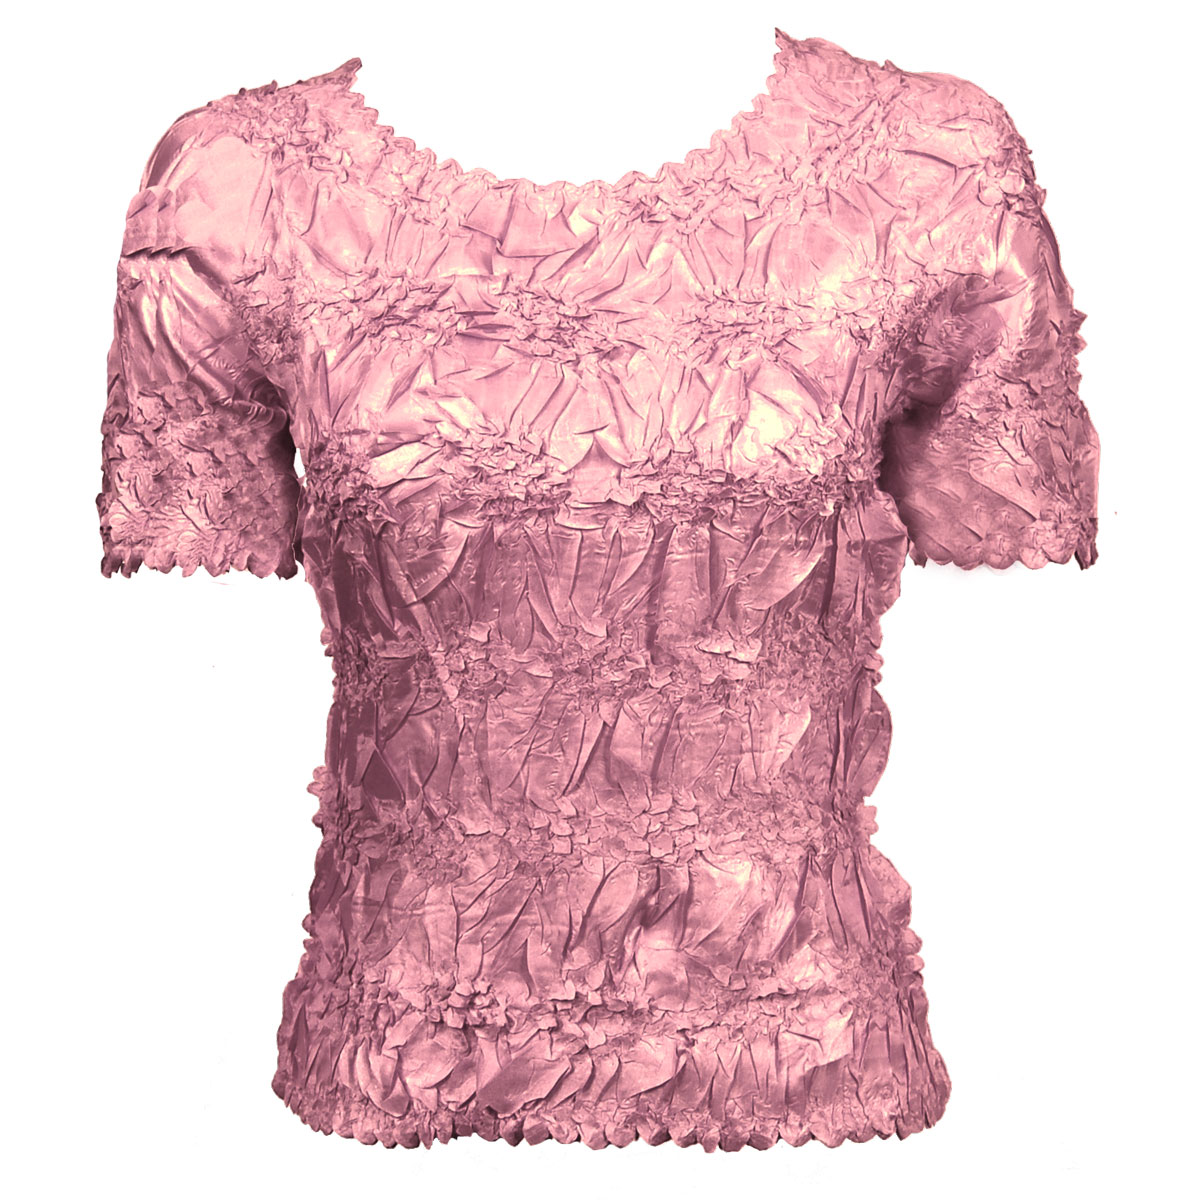 Wholesale Origami - Short Sleeve Solid Lilac Pink - Queen Size Fits (XL-3X)